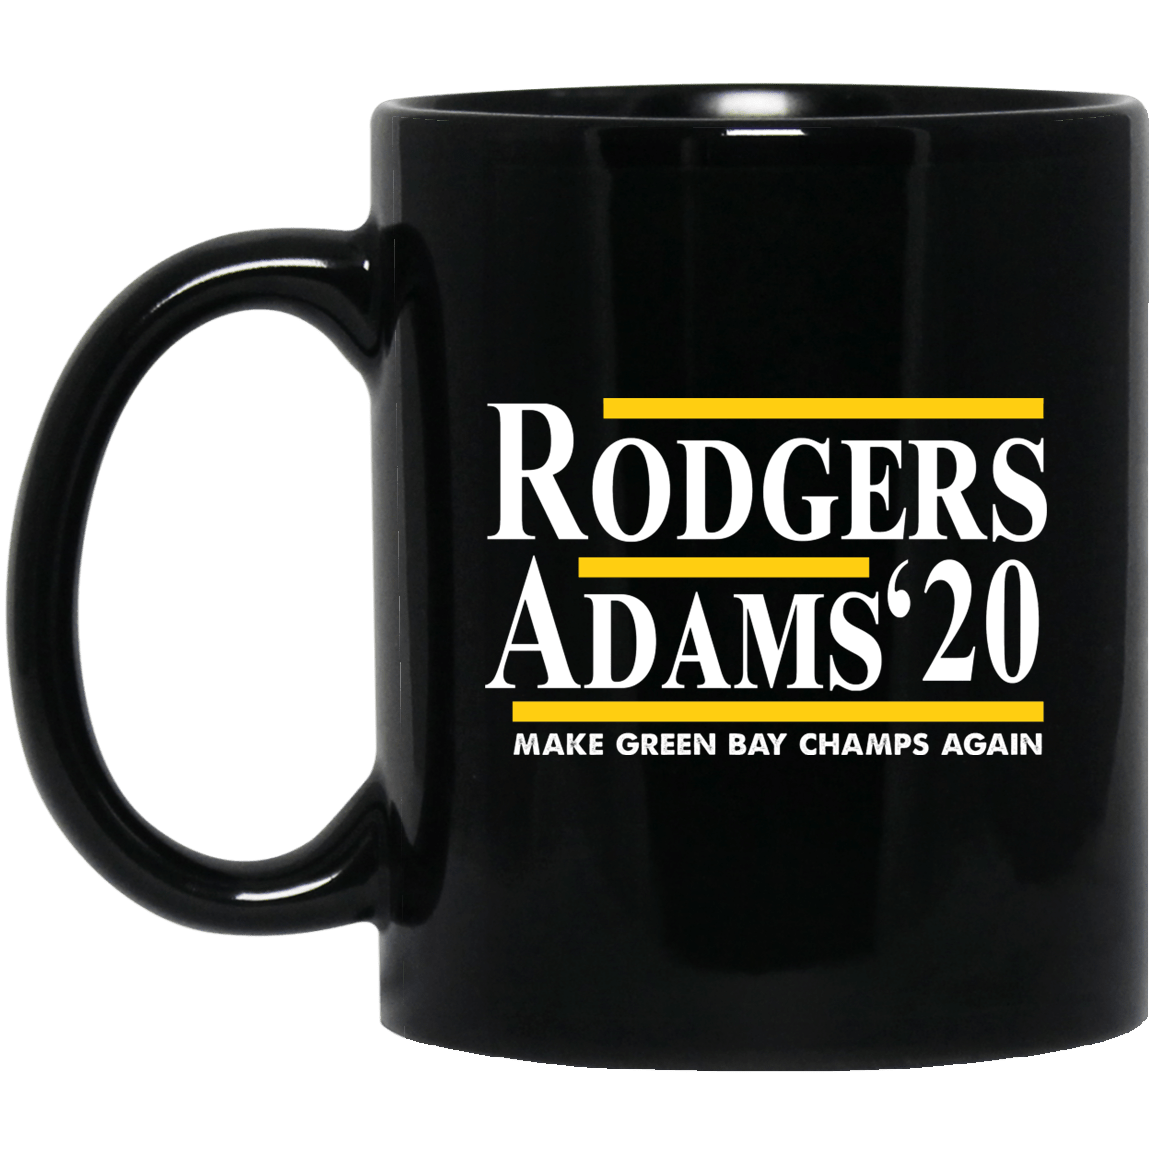 Rodgers Adam's 2020 Make Green Bay Champs Again Mug 1065-10181-91587443-49307 - Tee Ript